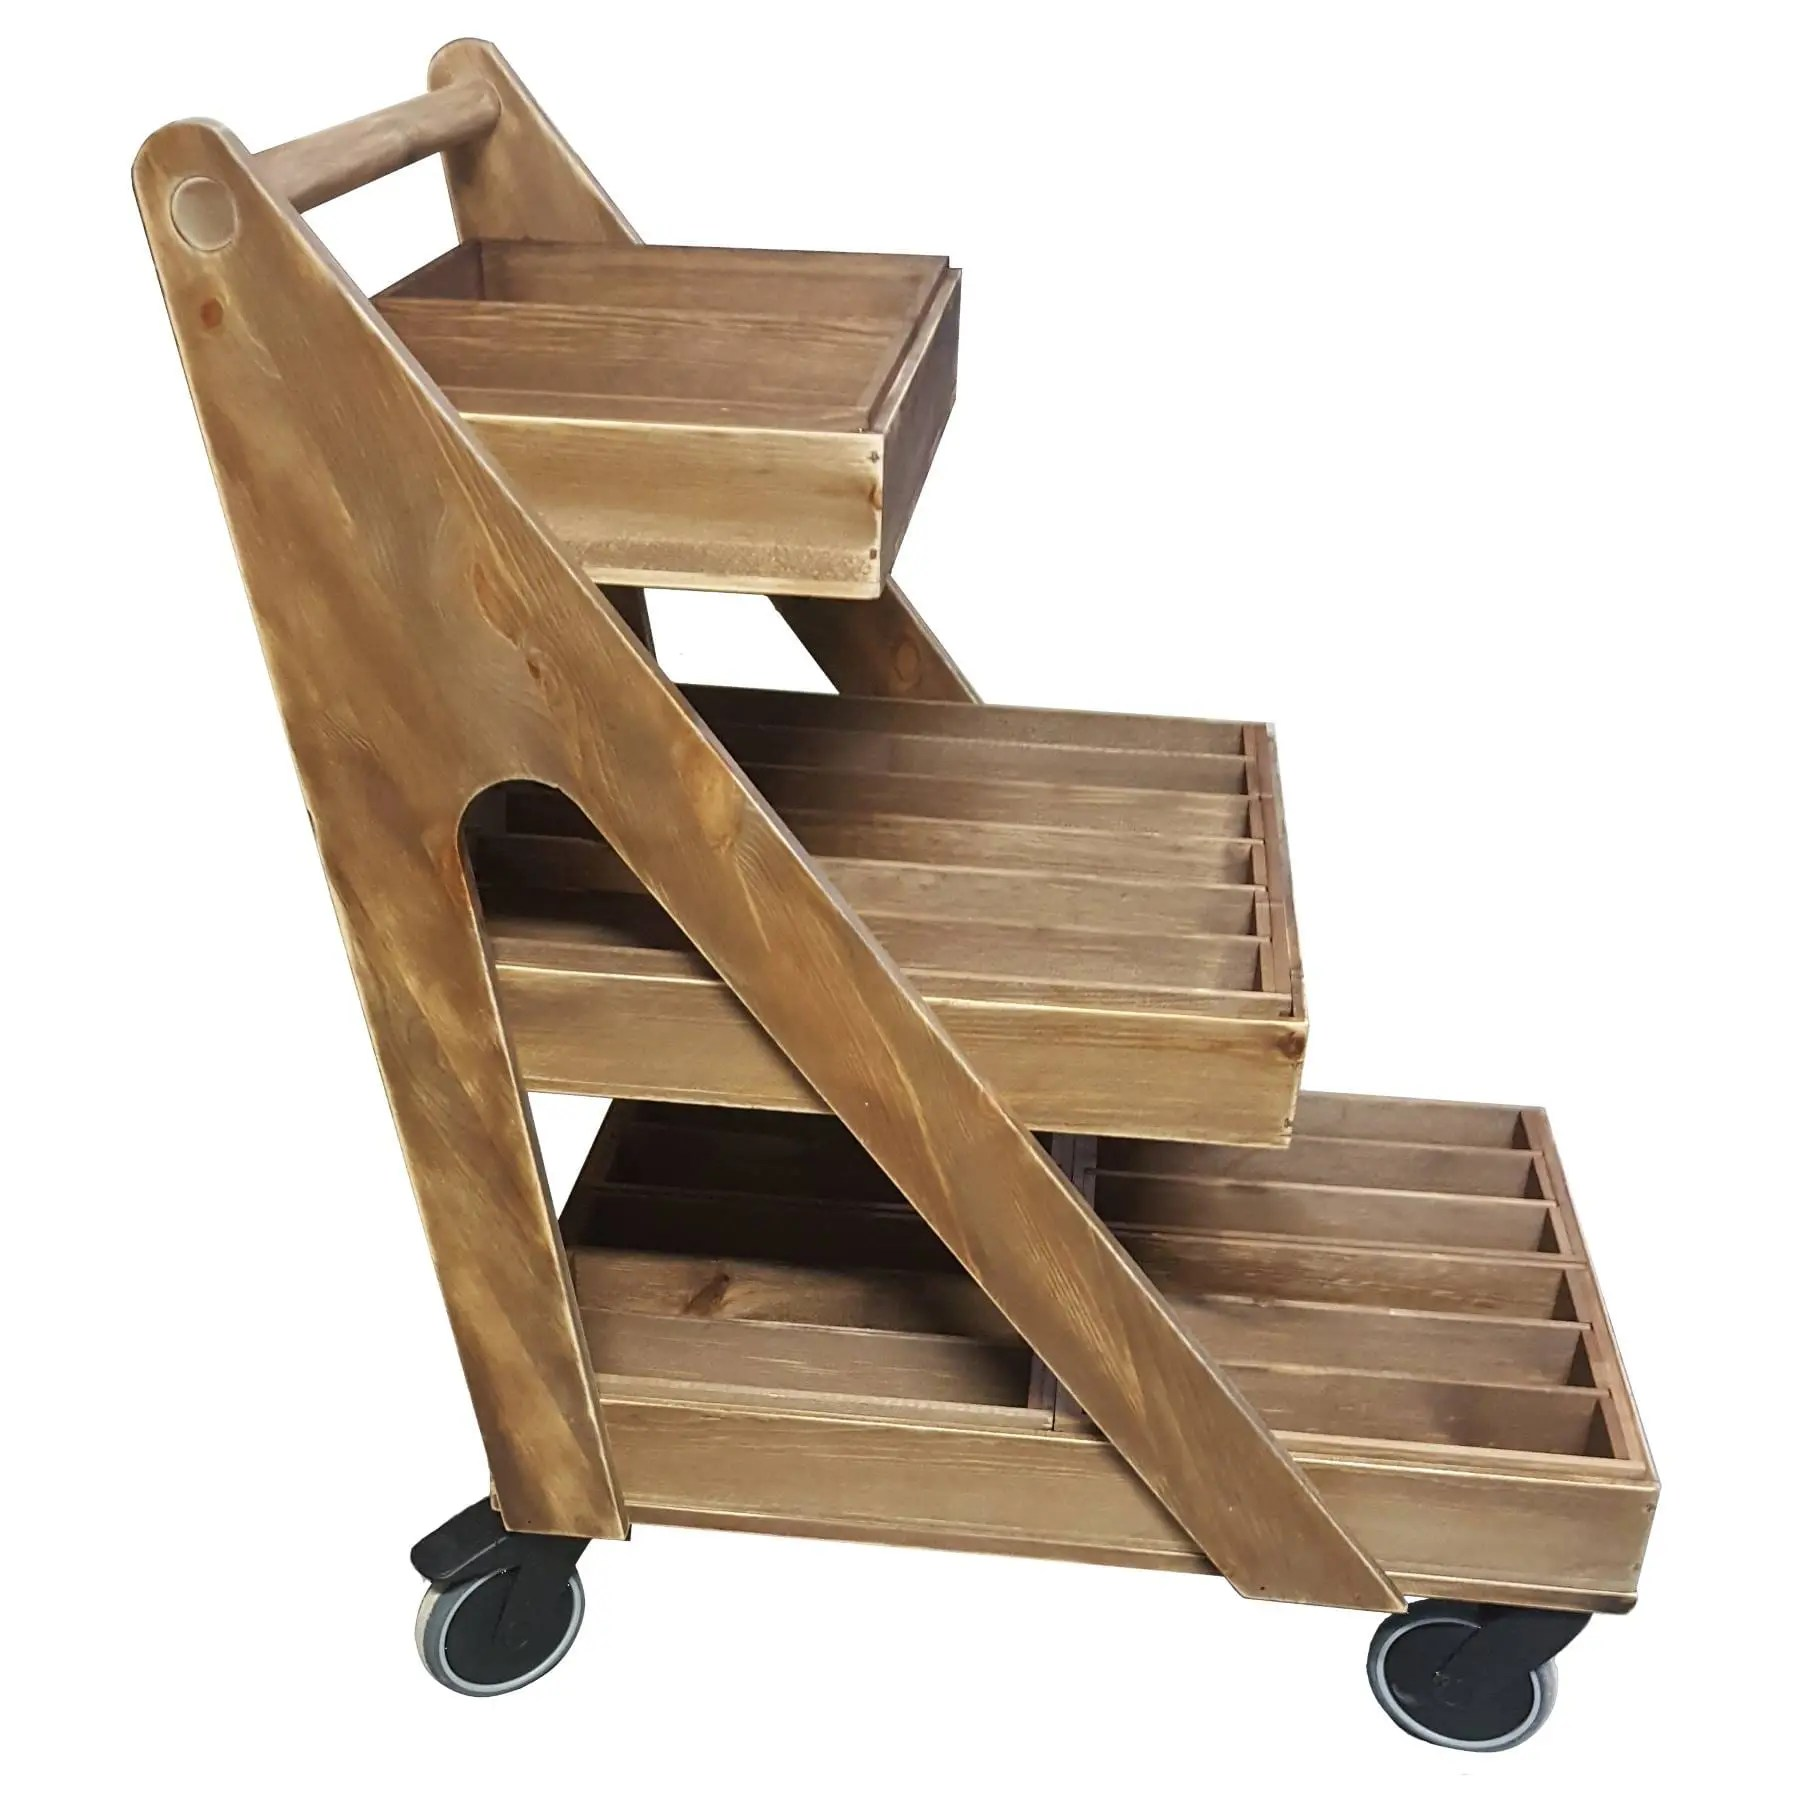 A Frame Trolley Rustic 3 Tier A Frame Trolley On Deluxe Wheels 850x560x900